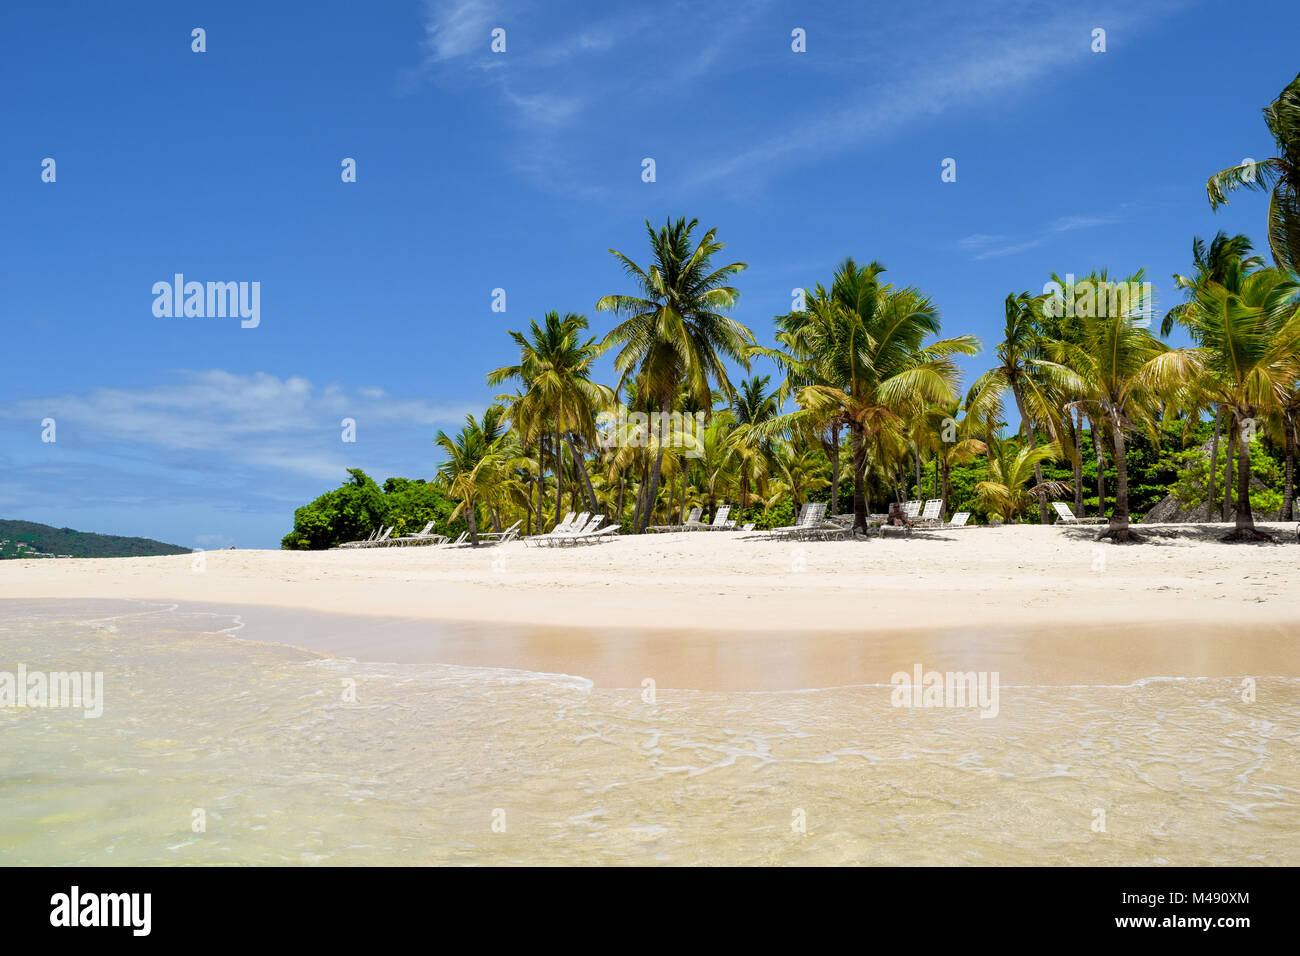 Beautiful island in the caribbean sea with white sand and turquoise water, Dominican Republic, palms, sunbeds, blue - Stock Image